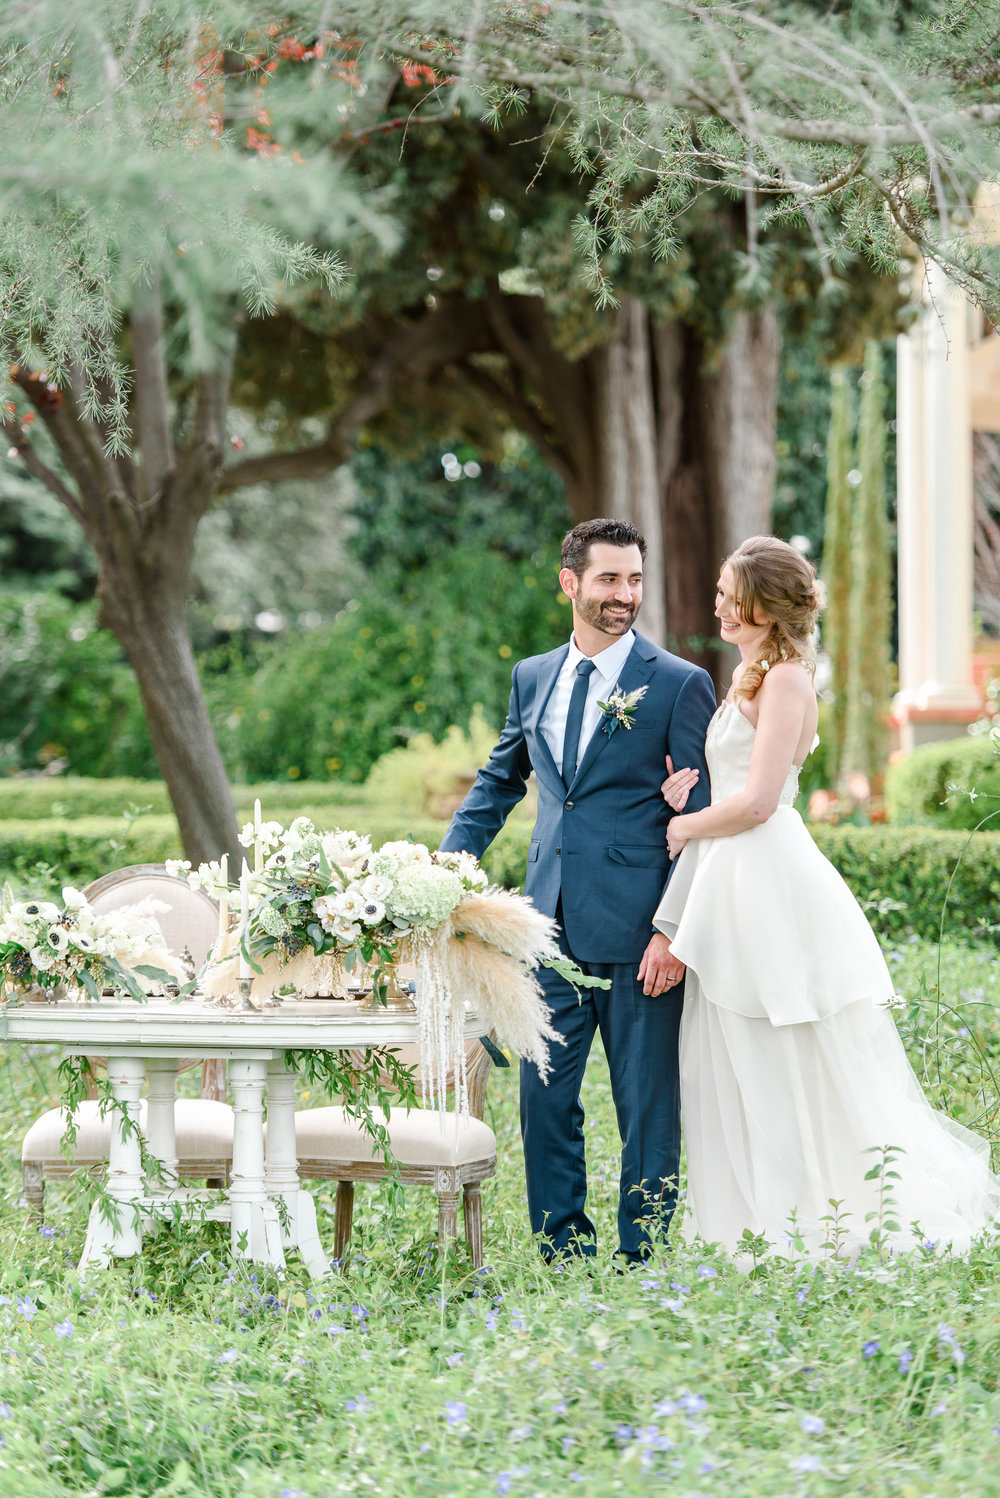 Garden Wedding Inspiration | Wedding Sweetheart Table